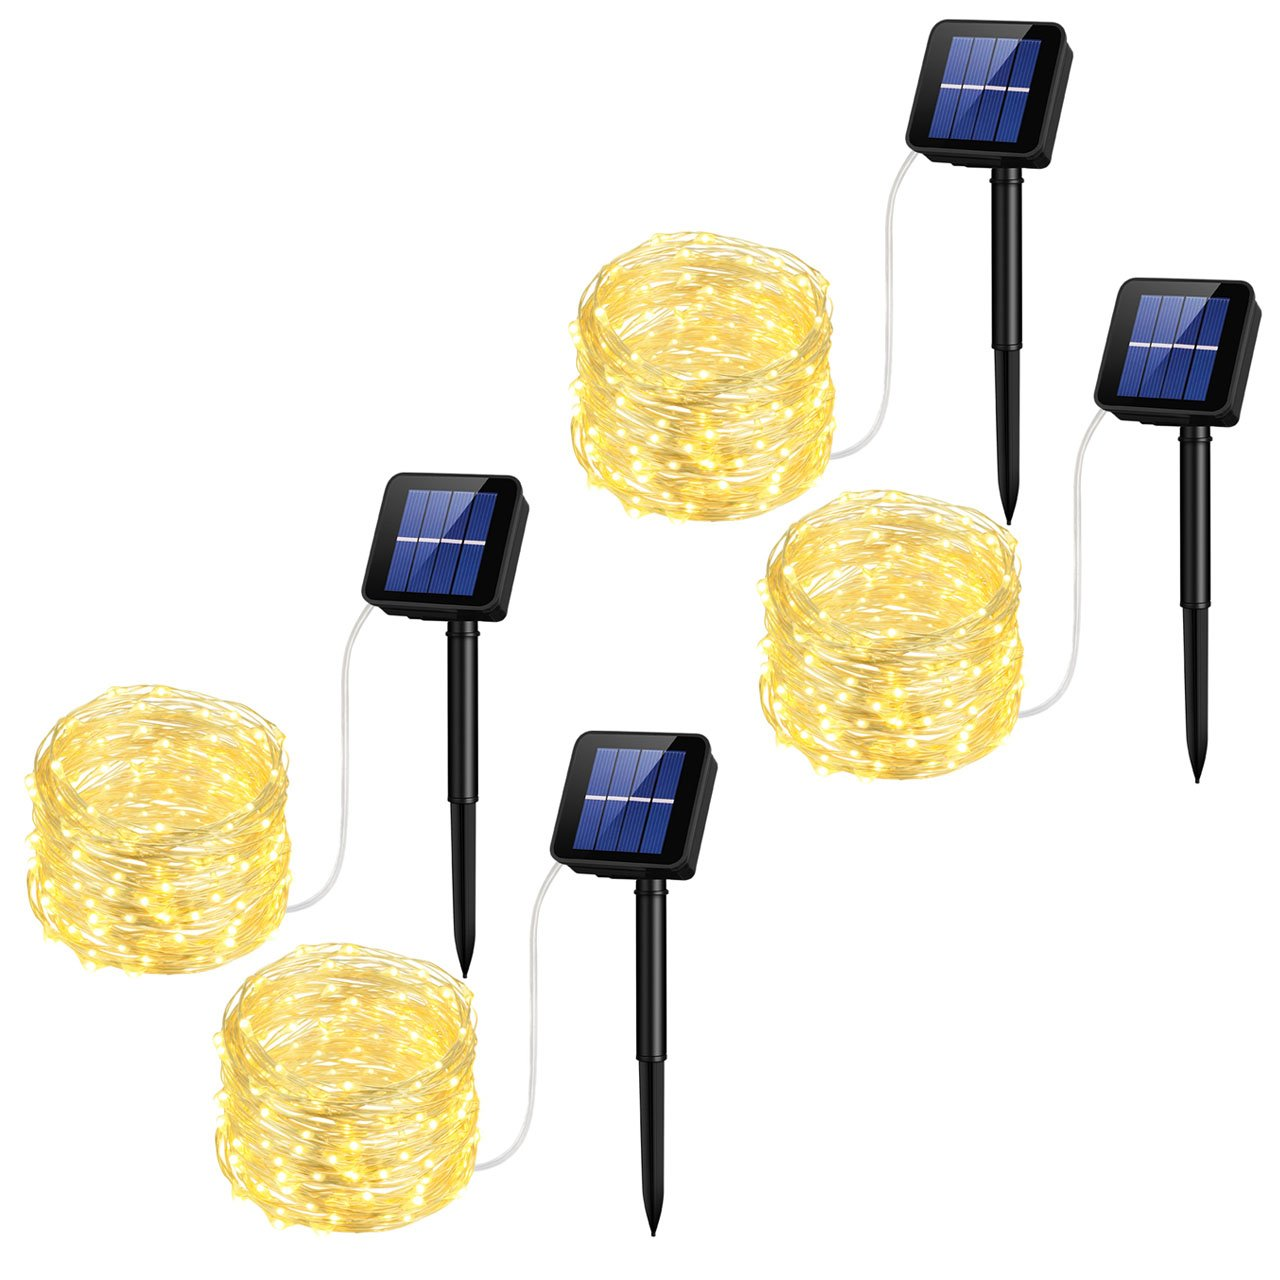 Mpow Solar String Lights, 33ft 100LED Outdoor String Lights, Waterproof Decorative String Lights for Patio, Garden, Gate, Yard, Party, Wedding, Christmas (Warm White) Cymas GECD017AS